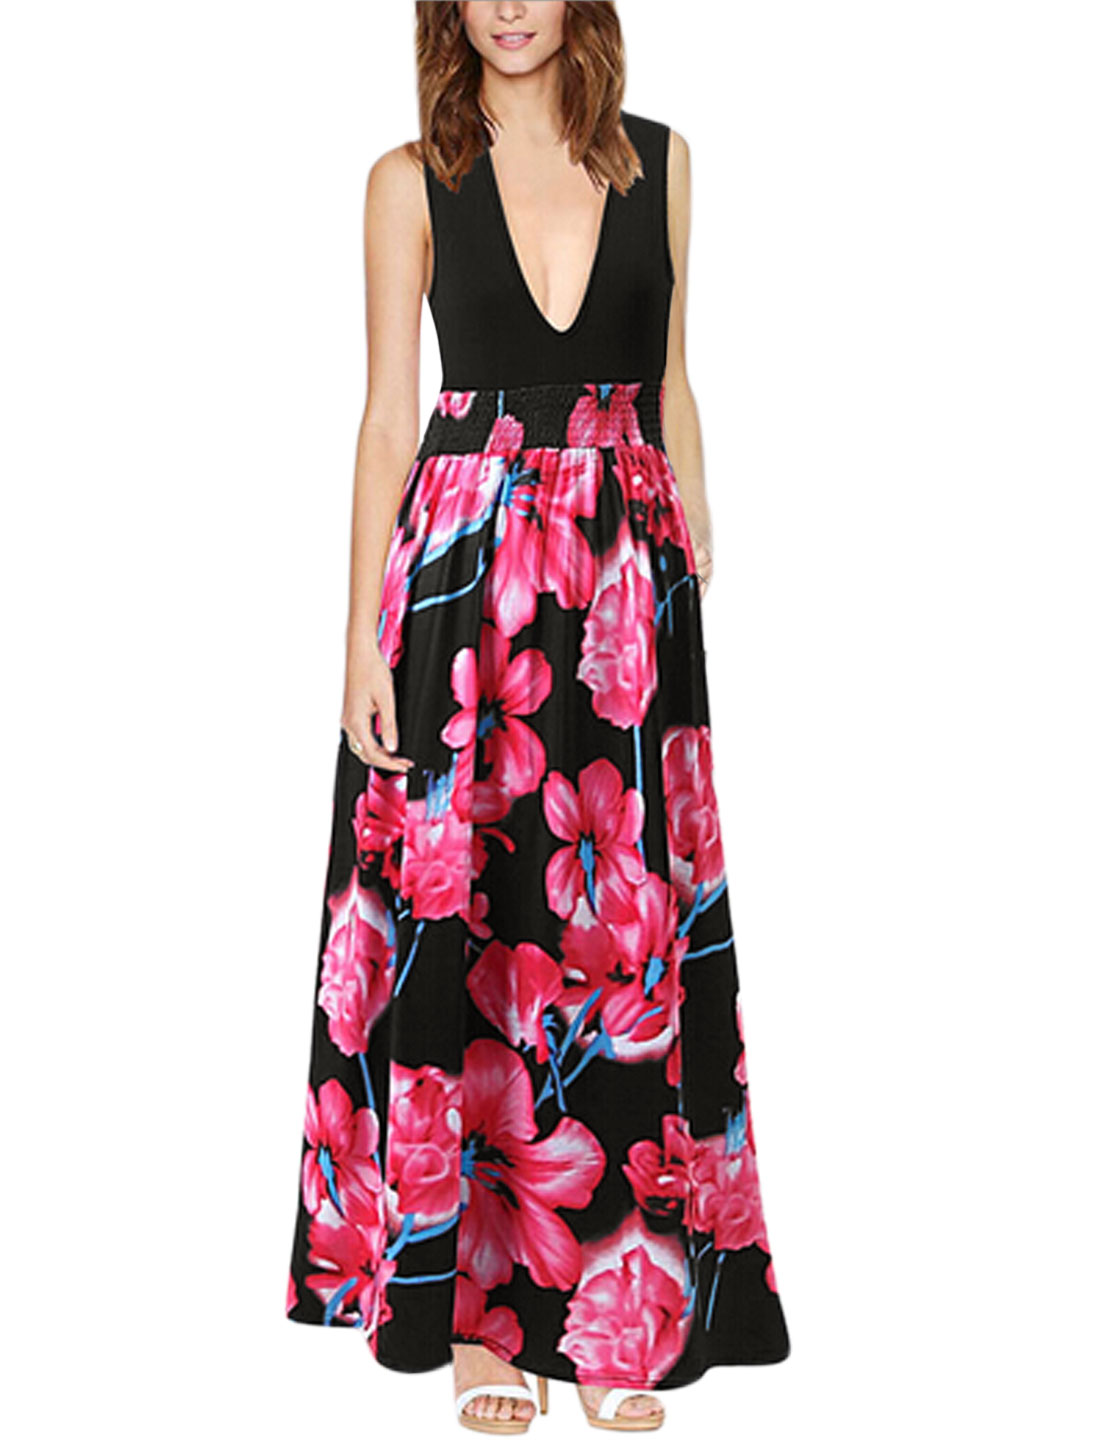 Women Floral Prints Smocked Waist Sleeveless Maxi Dress Fuchsia Black M